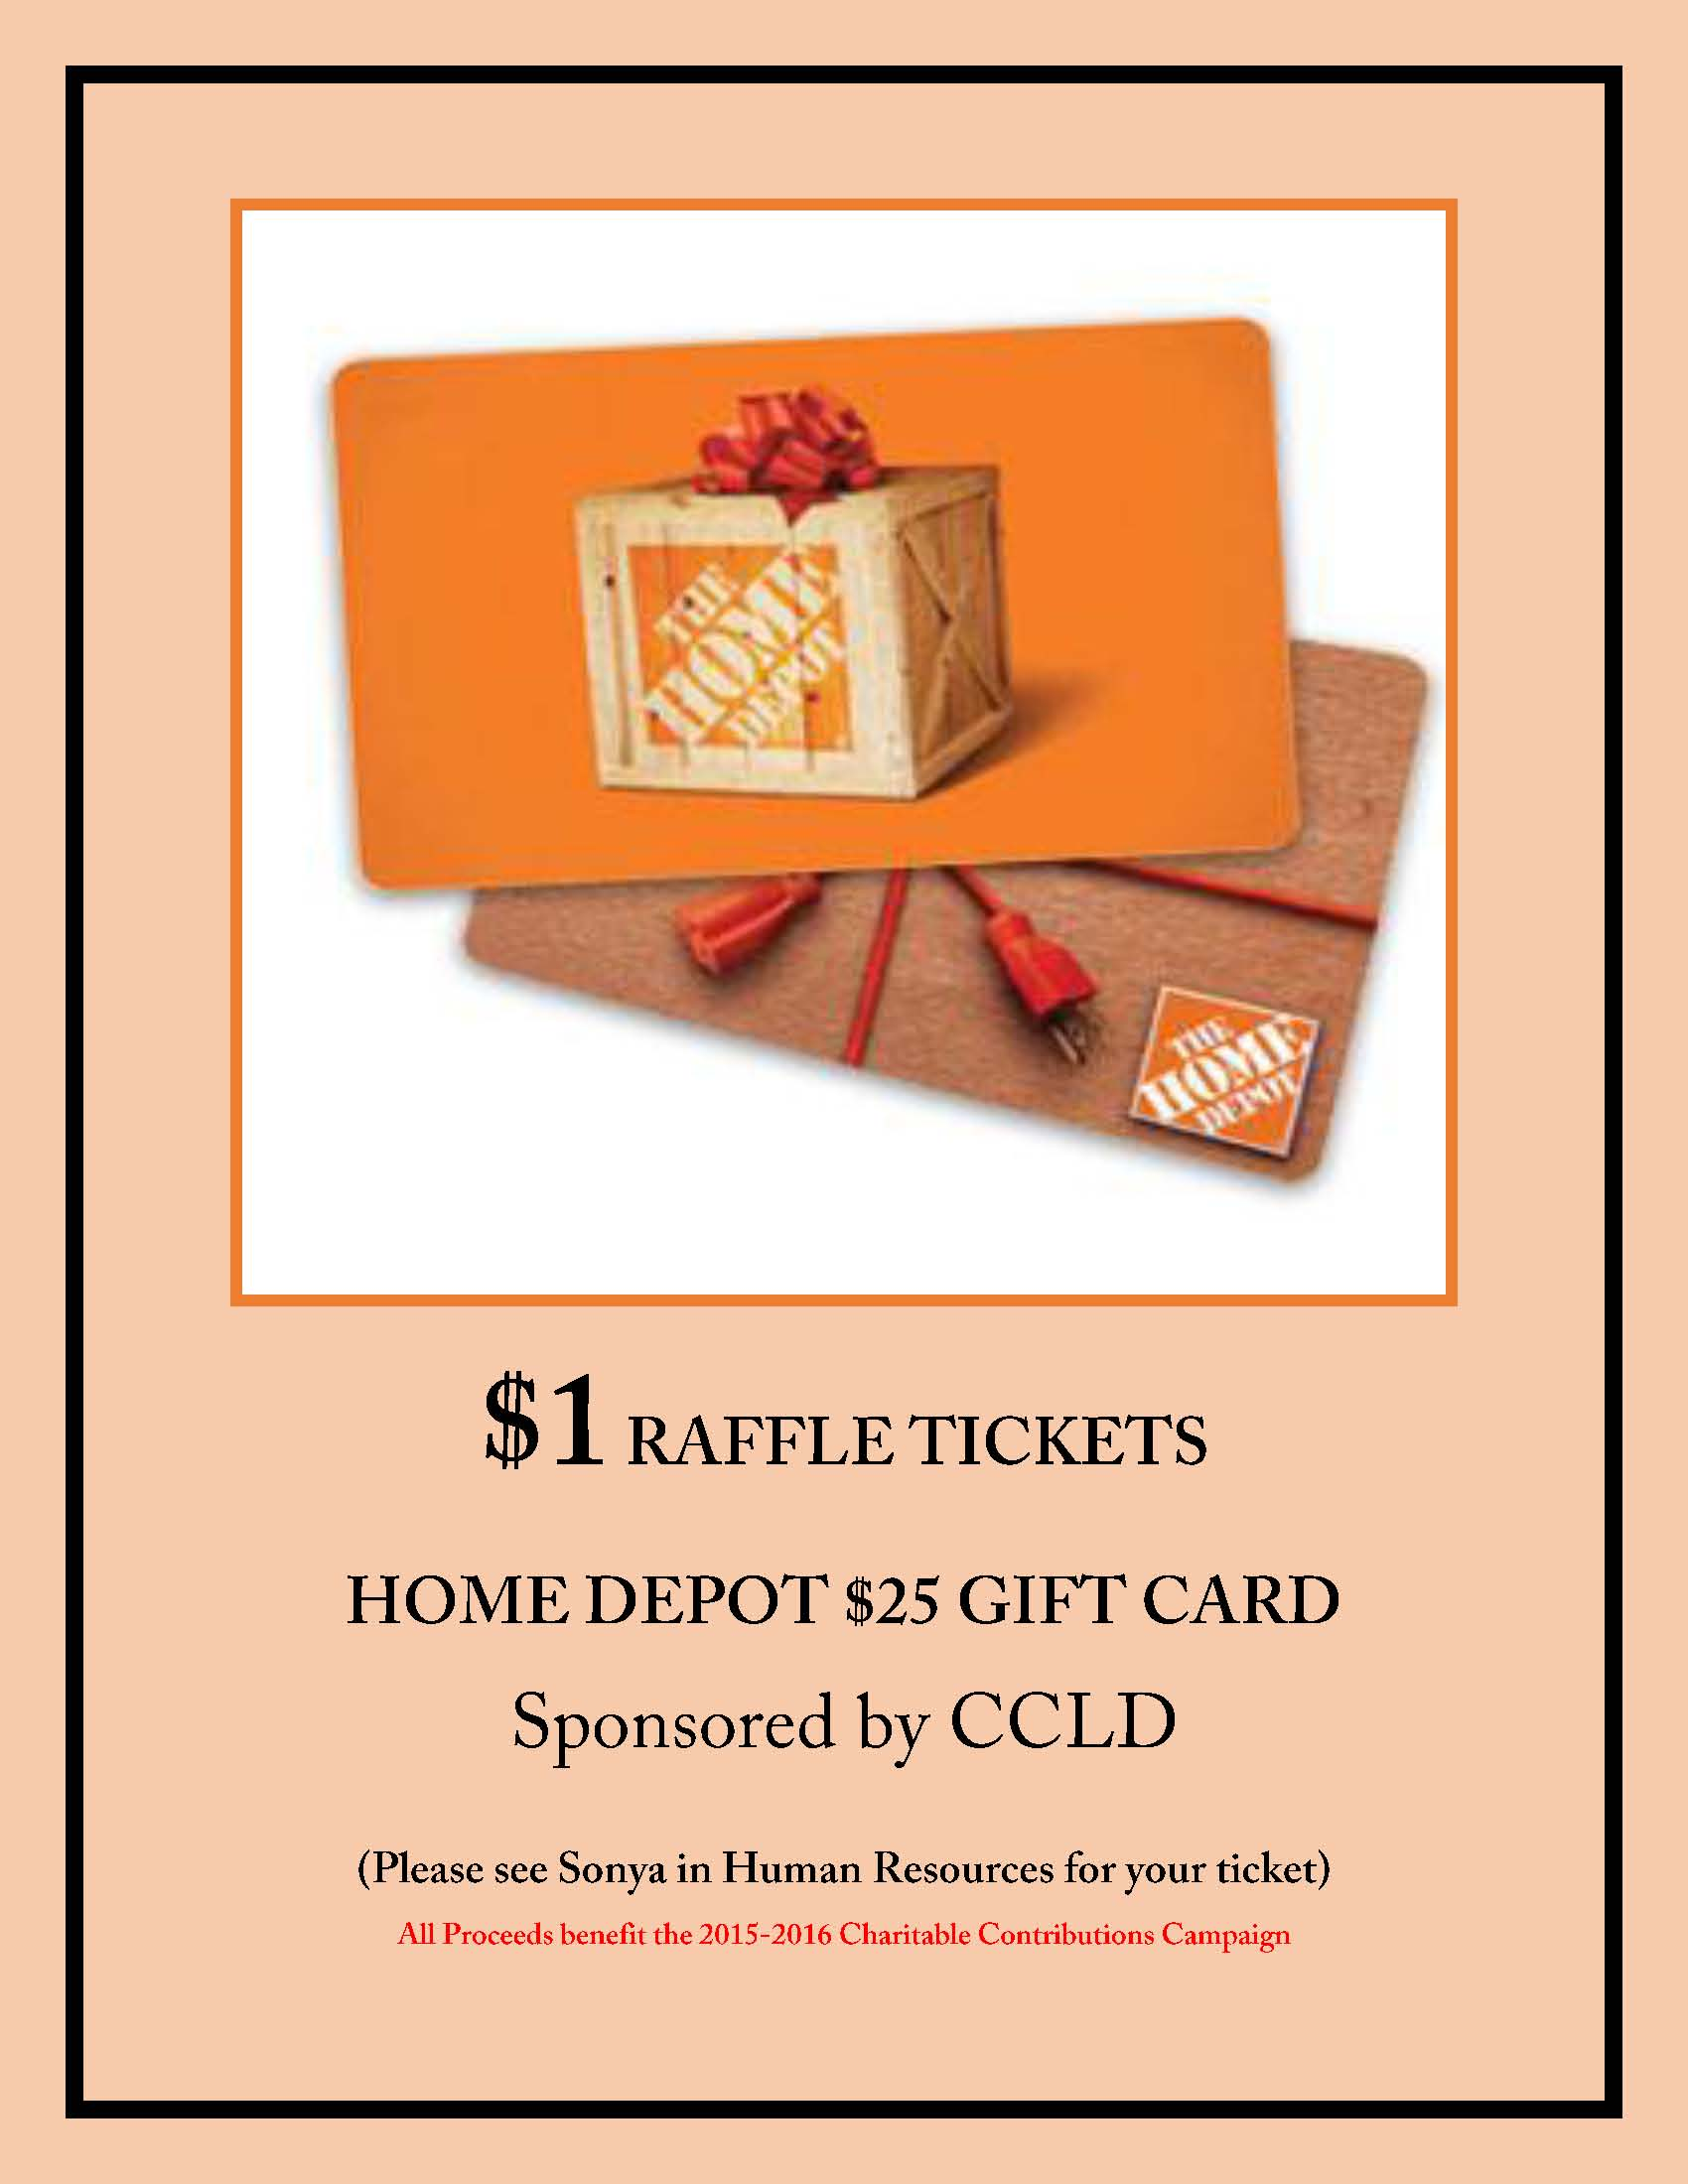 home depot raffle tickets image of local worship